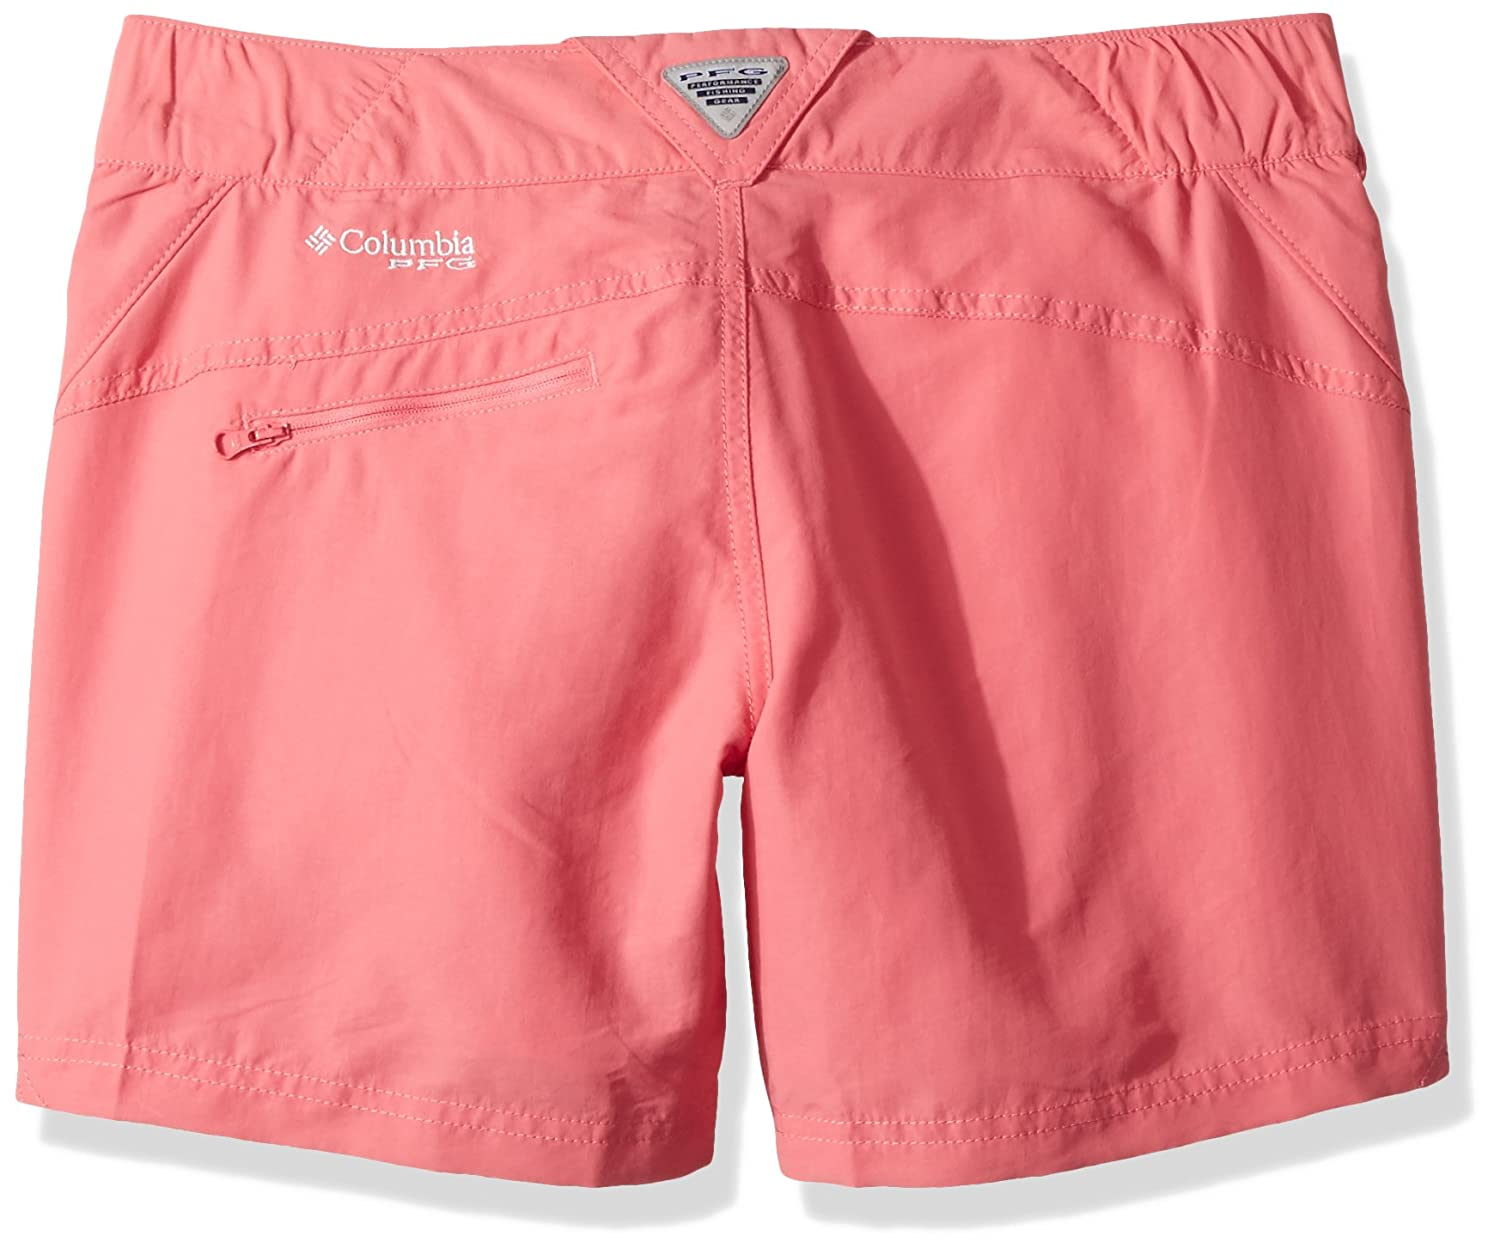 UV Sun Protection Moisture Wicking Fabric Columbia Womens Coral Point II Short